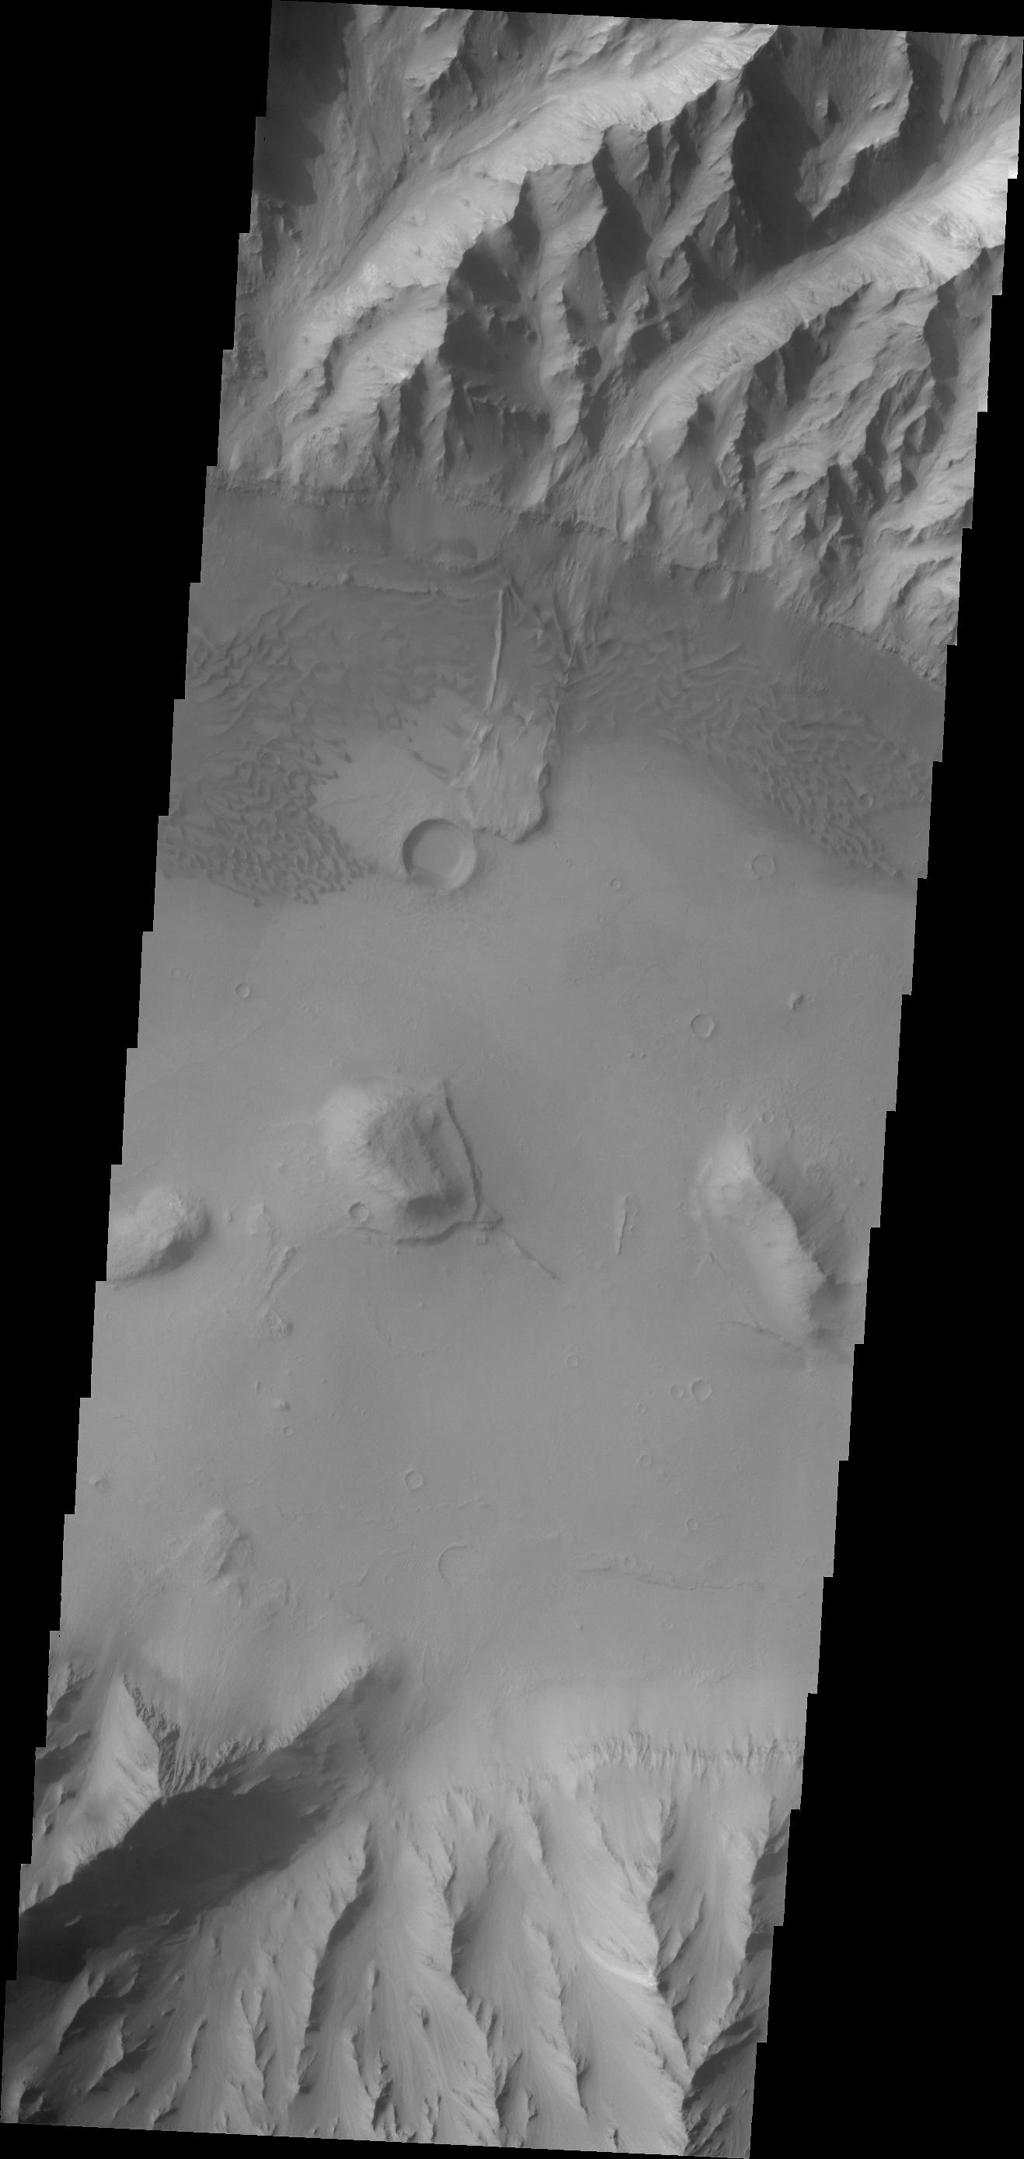 This image taken by NASA's 2001 Mars Odyssey of the eastern end of Coprates Chasma contains a landslide deposit and sand dunes. Both features are typical for the chasmata that make up Valles Marineris.